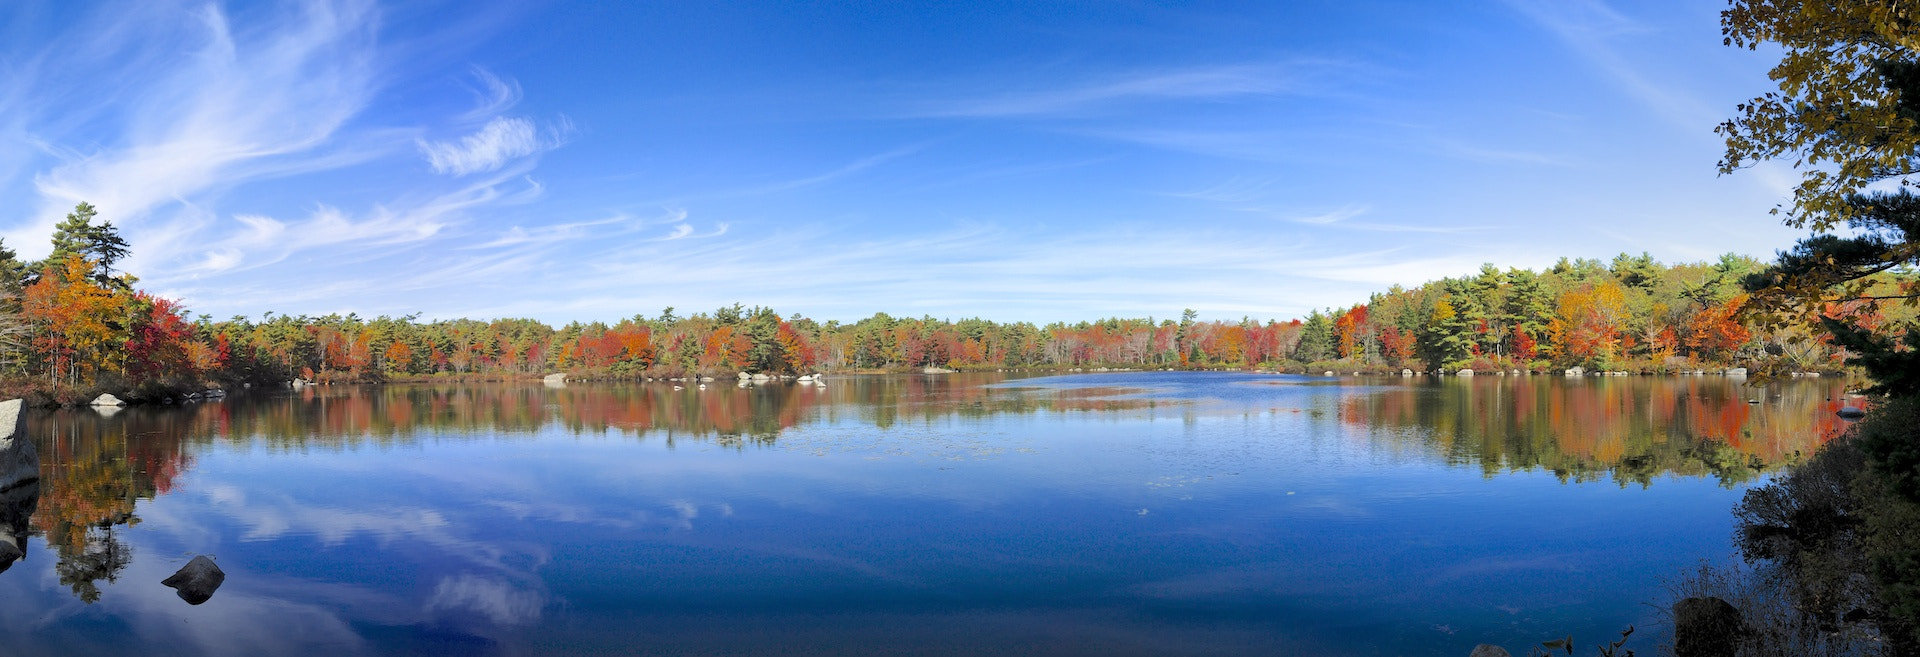 Photograph Frog Pond Panorama by Don Martin on 500px